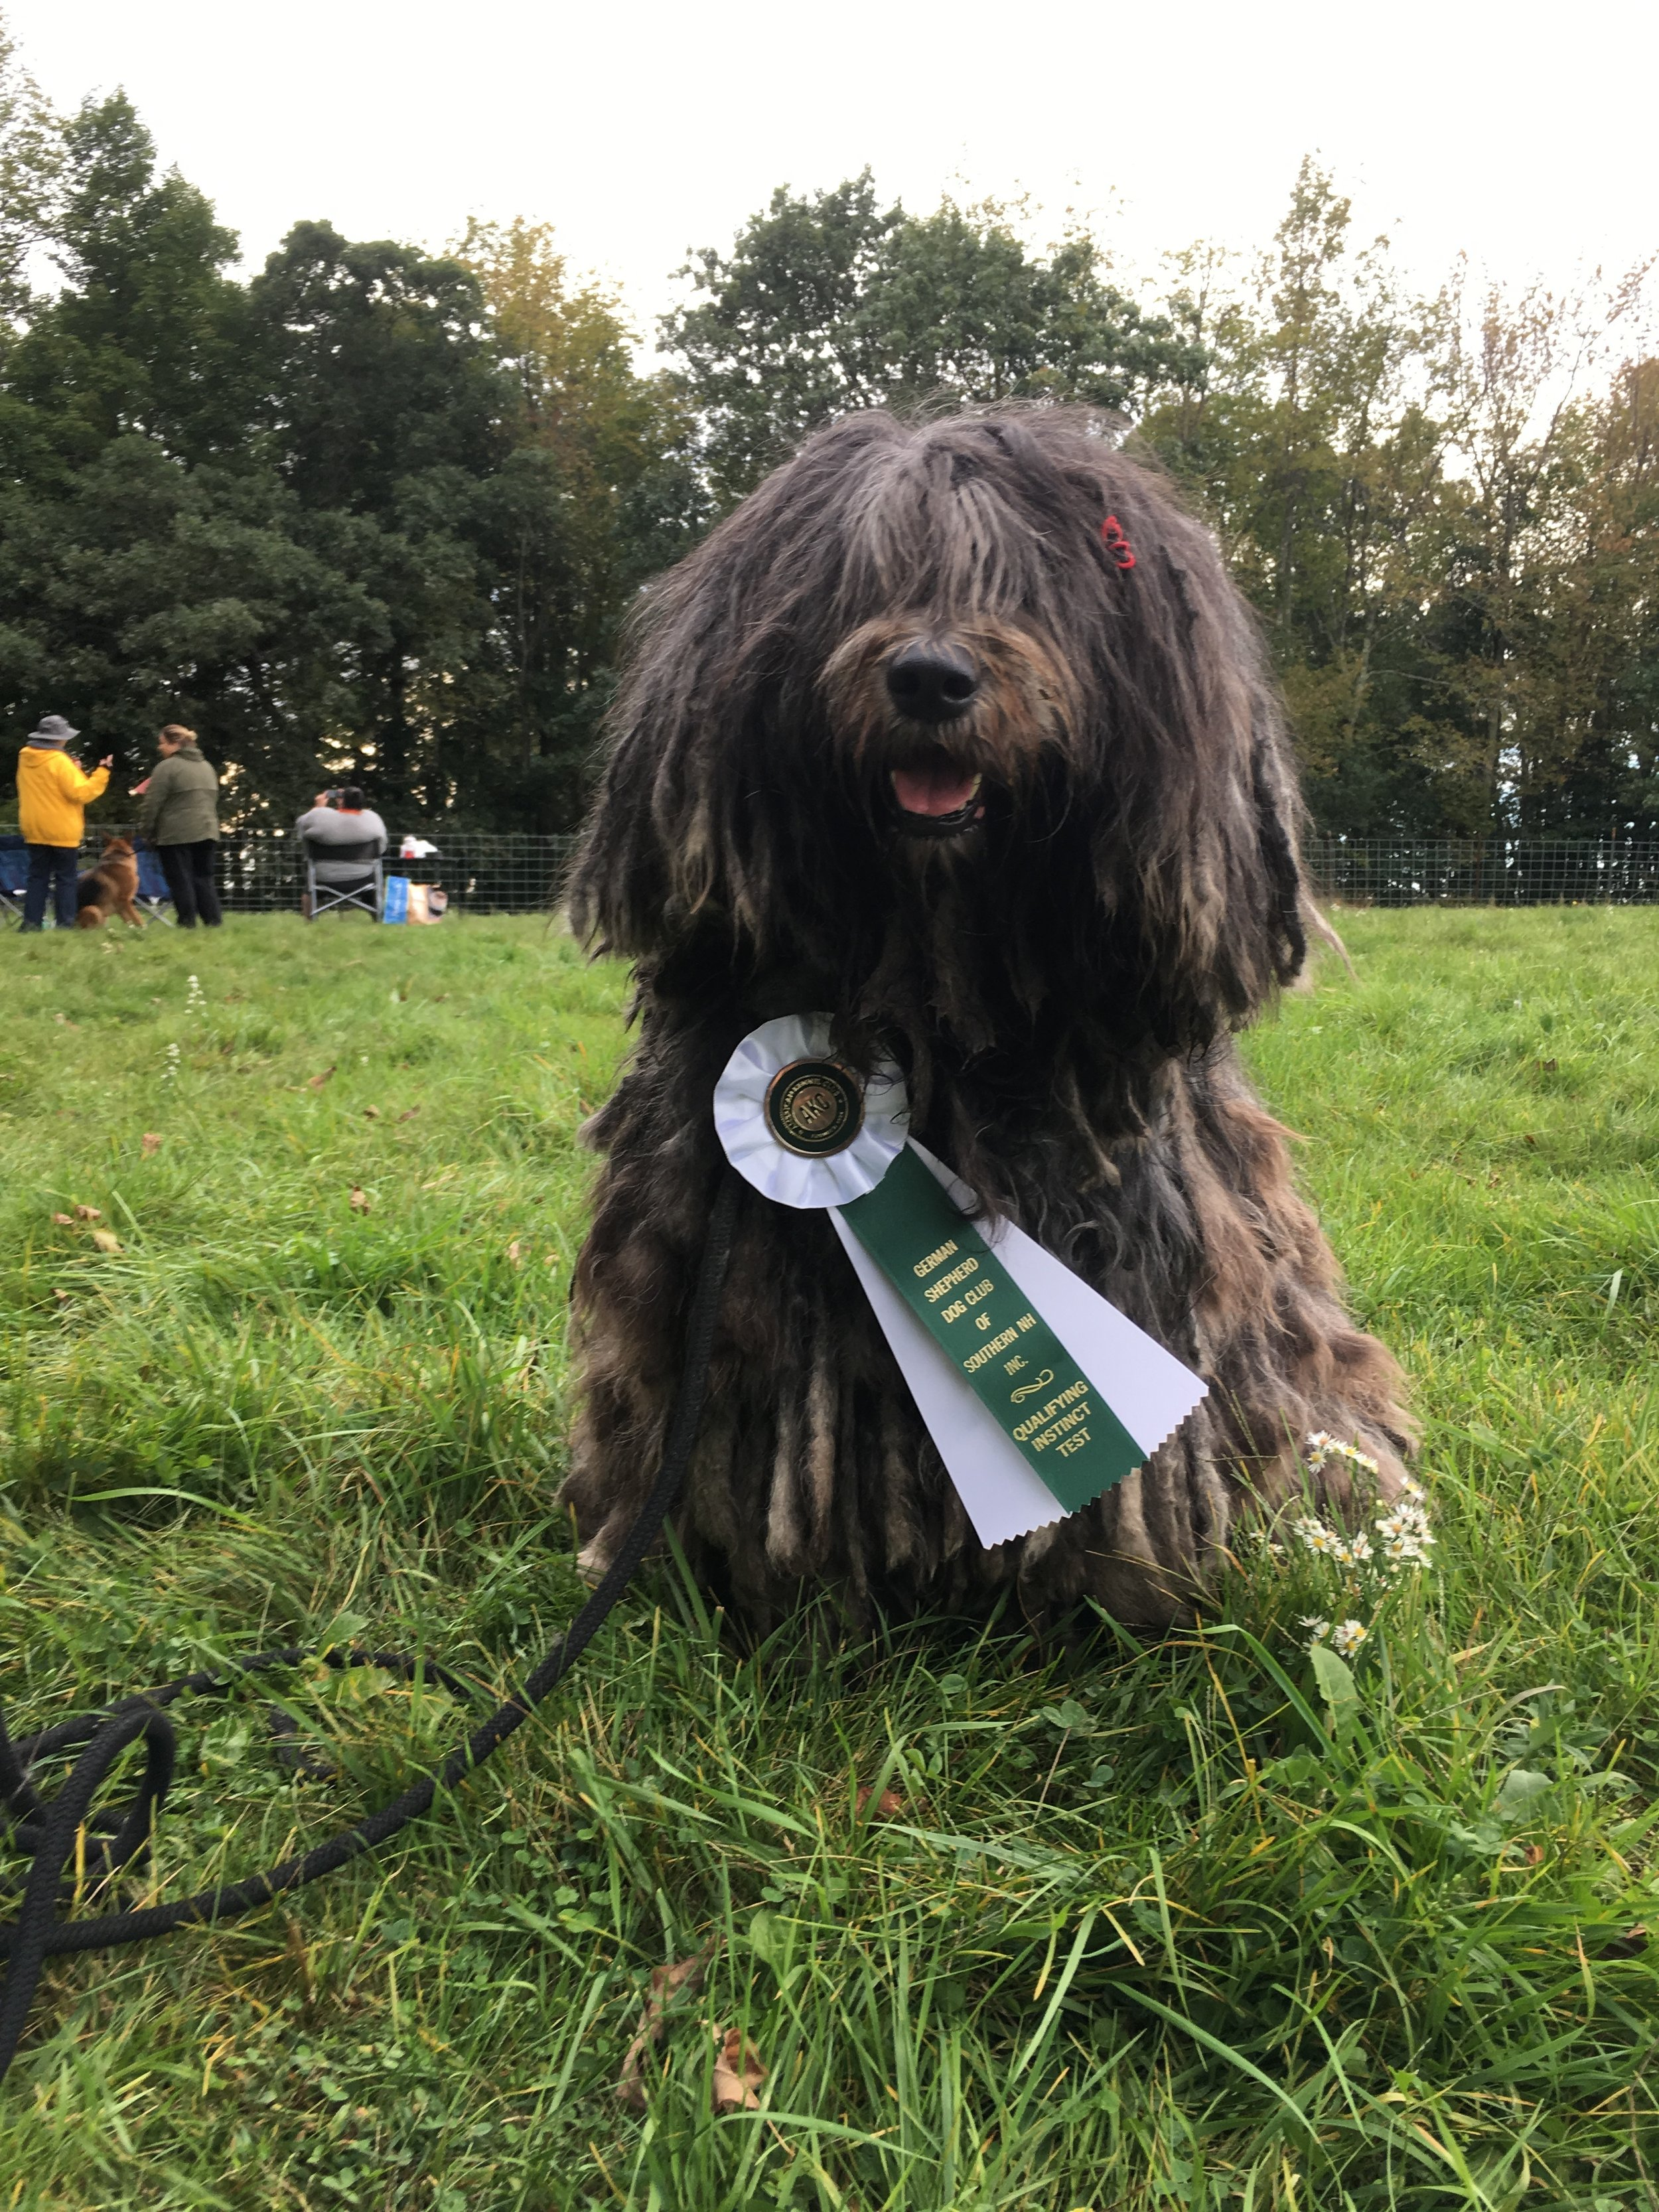 The Bergamasco is versatile - There are so many ways to have fun with your Bergamasco and they are always happy as long as they are with you.